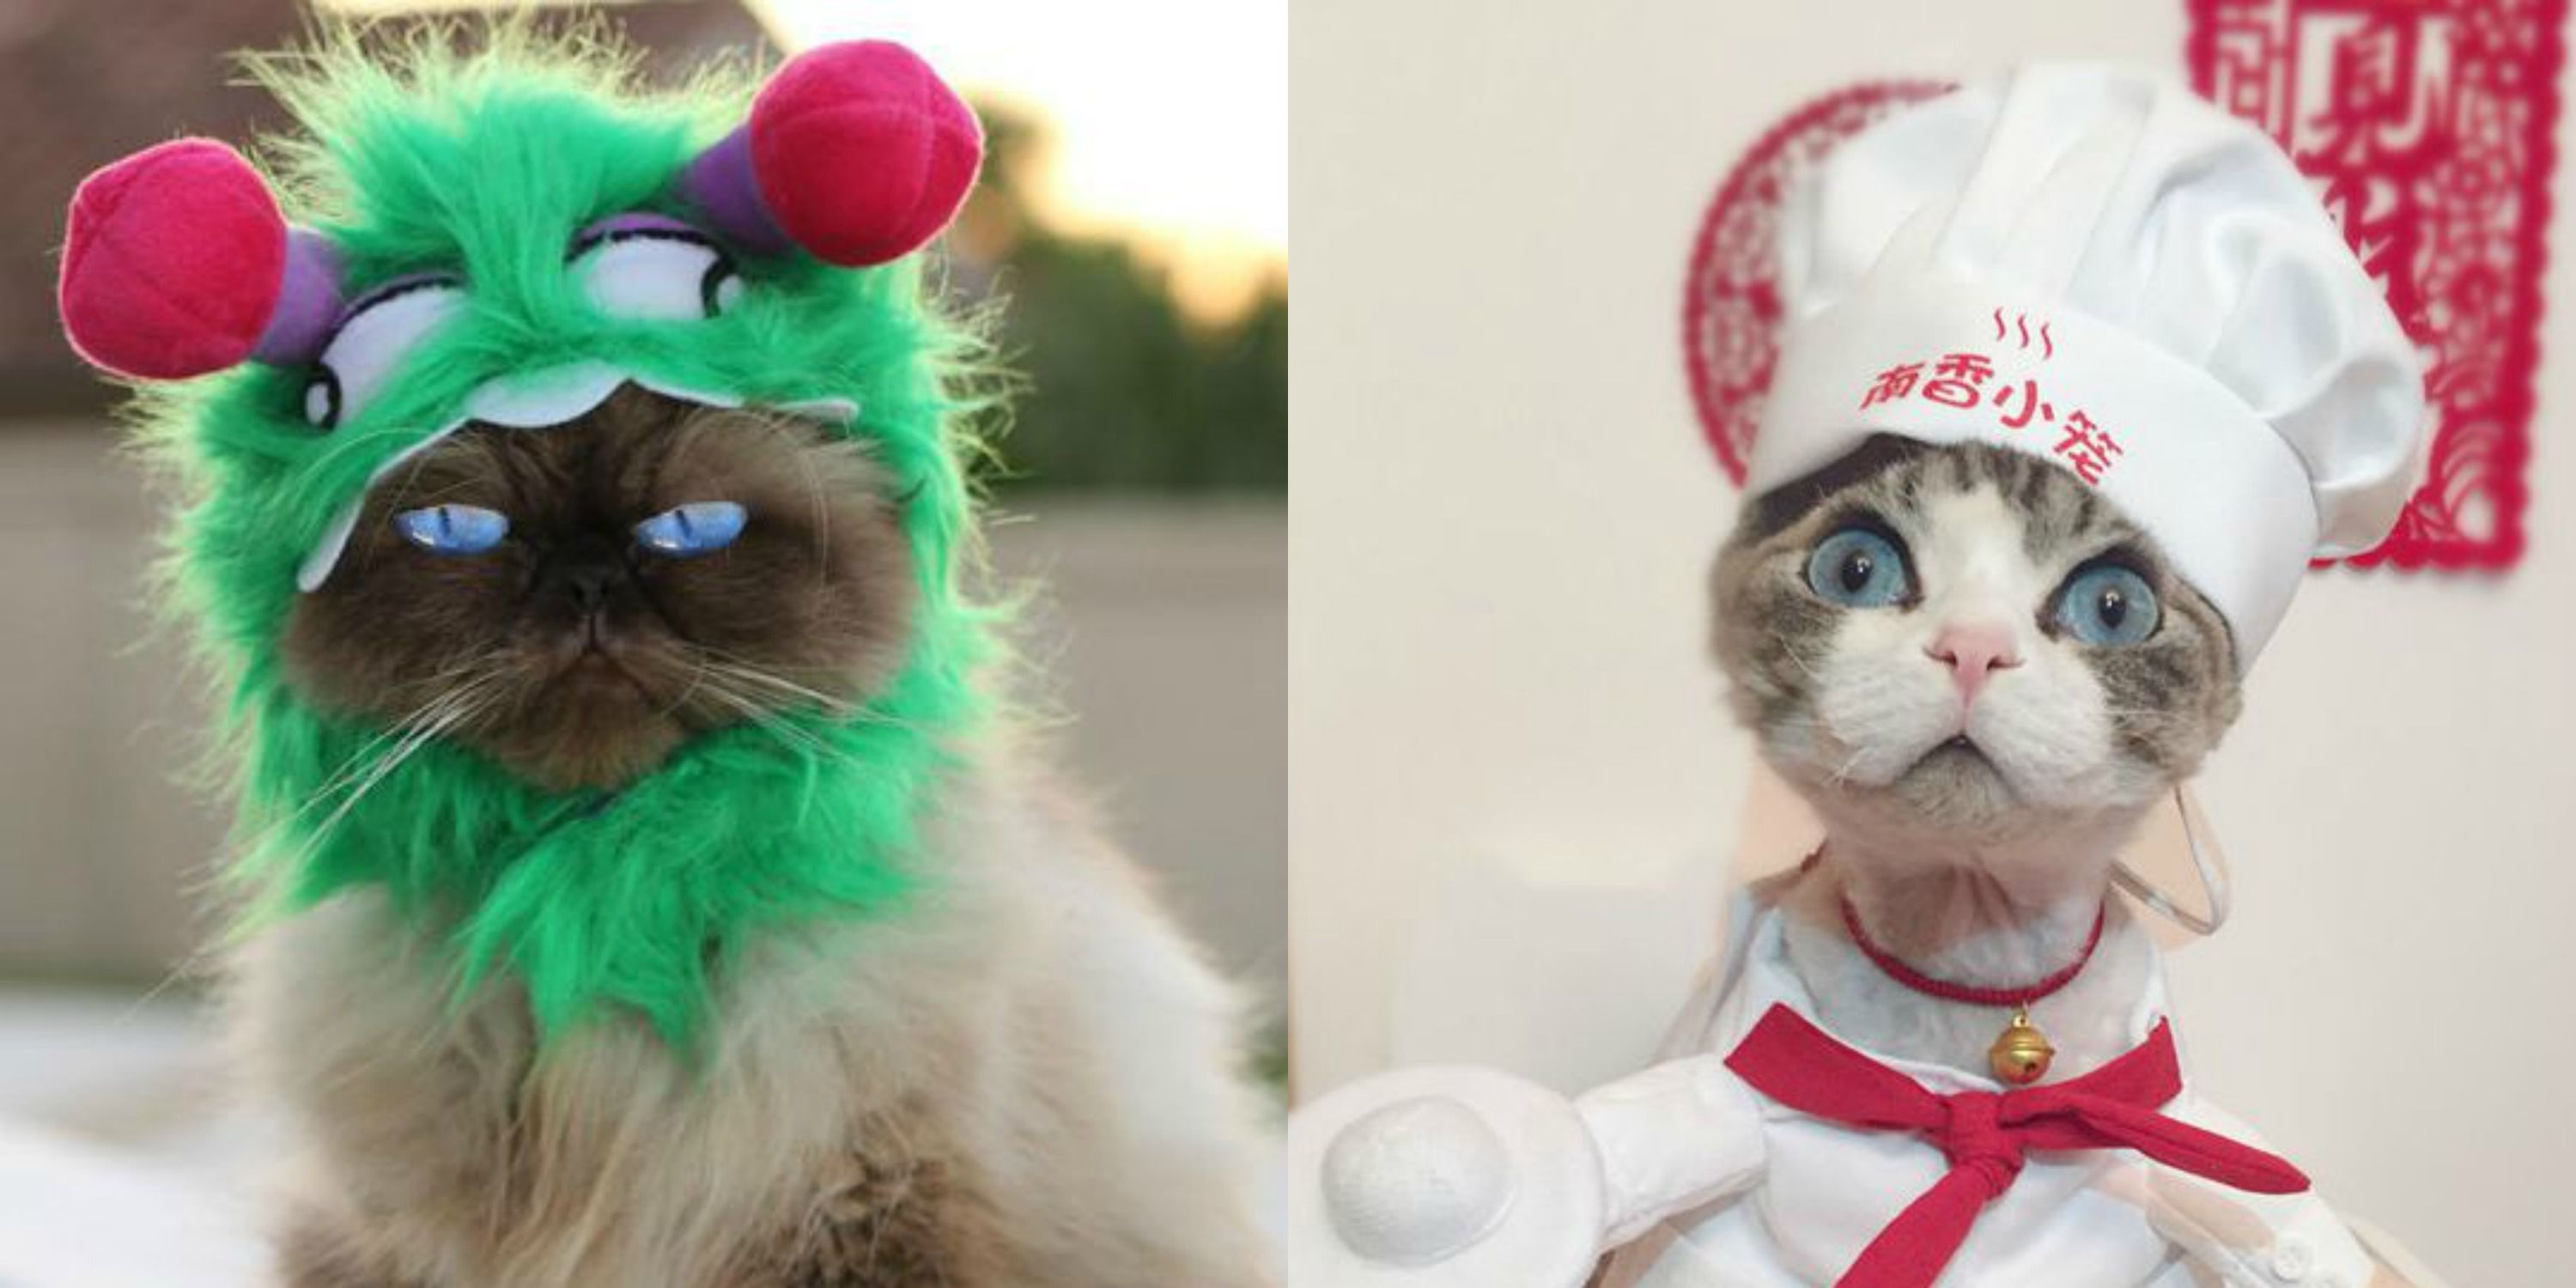 cat halloween costumes & 26 Pet Cat Halloween Costumes 2018 - Cute Ideas for Cat Costumes